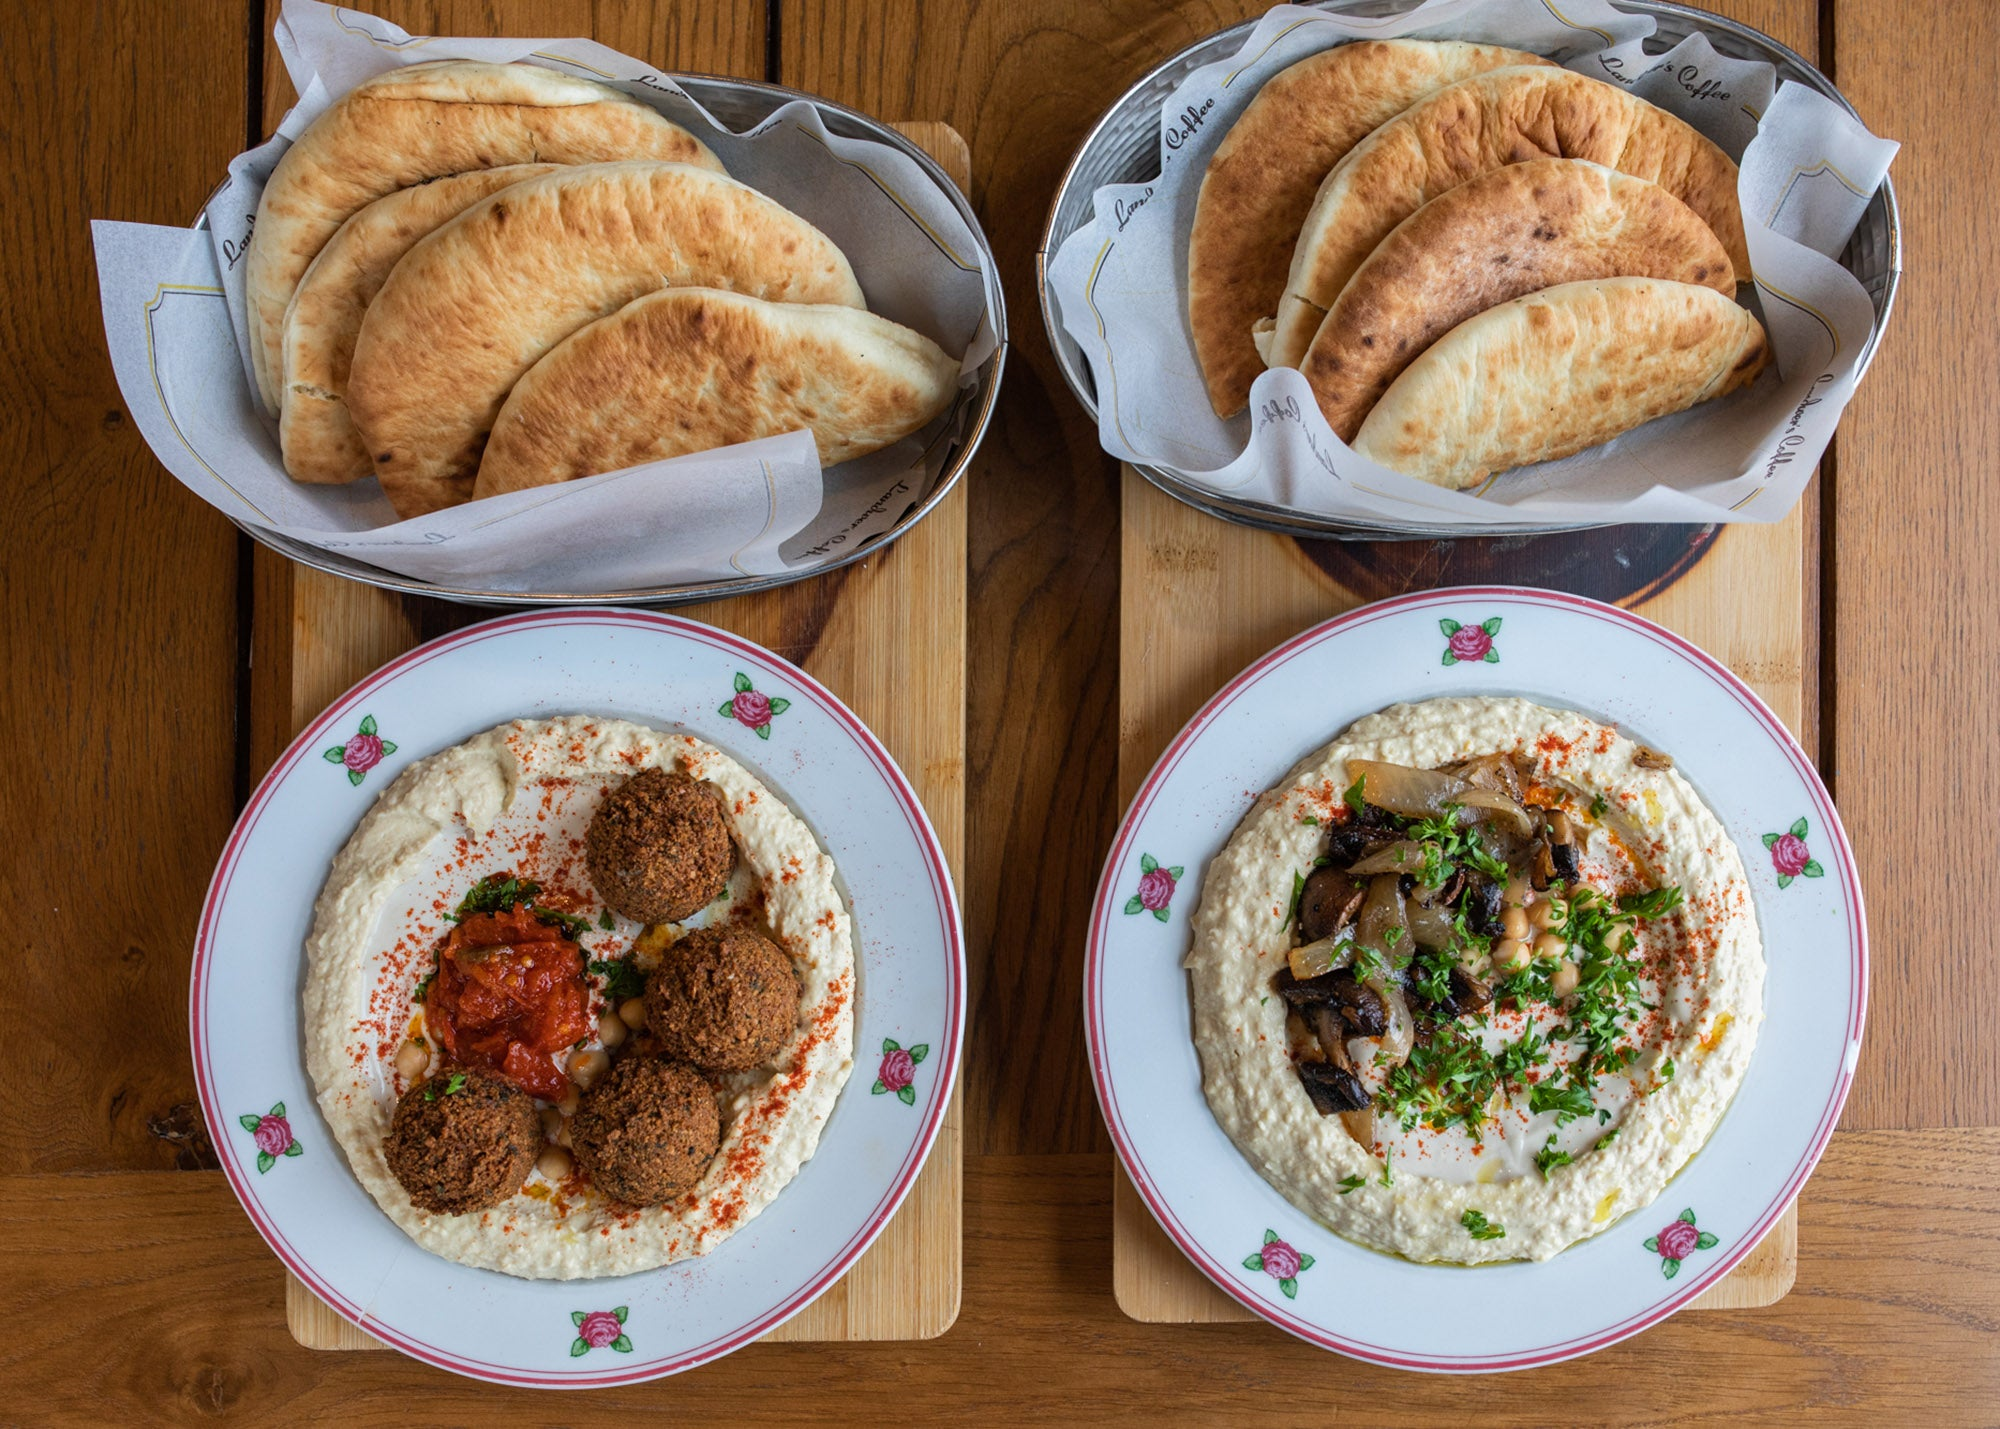 Souk and mushroom hummus bowls at Cafe Landwer